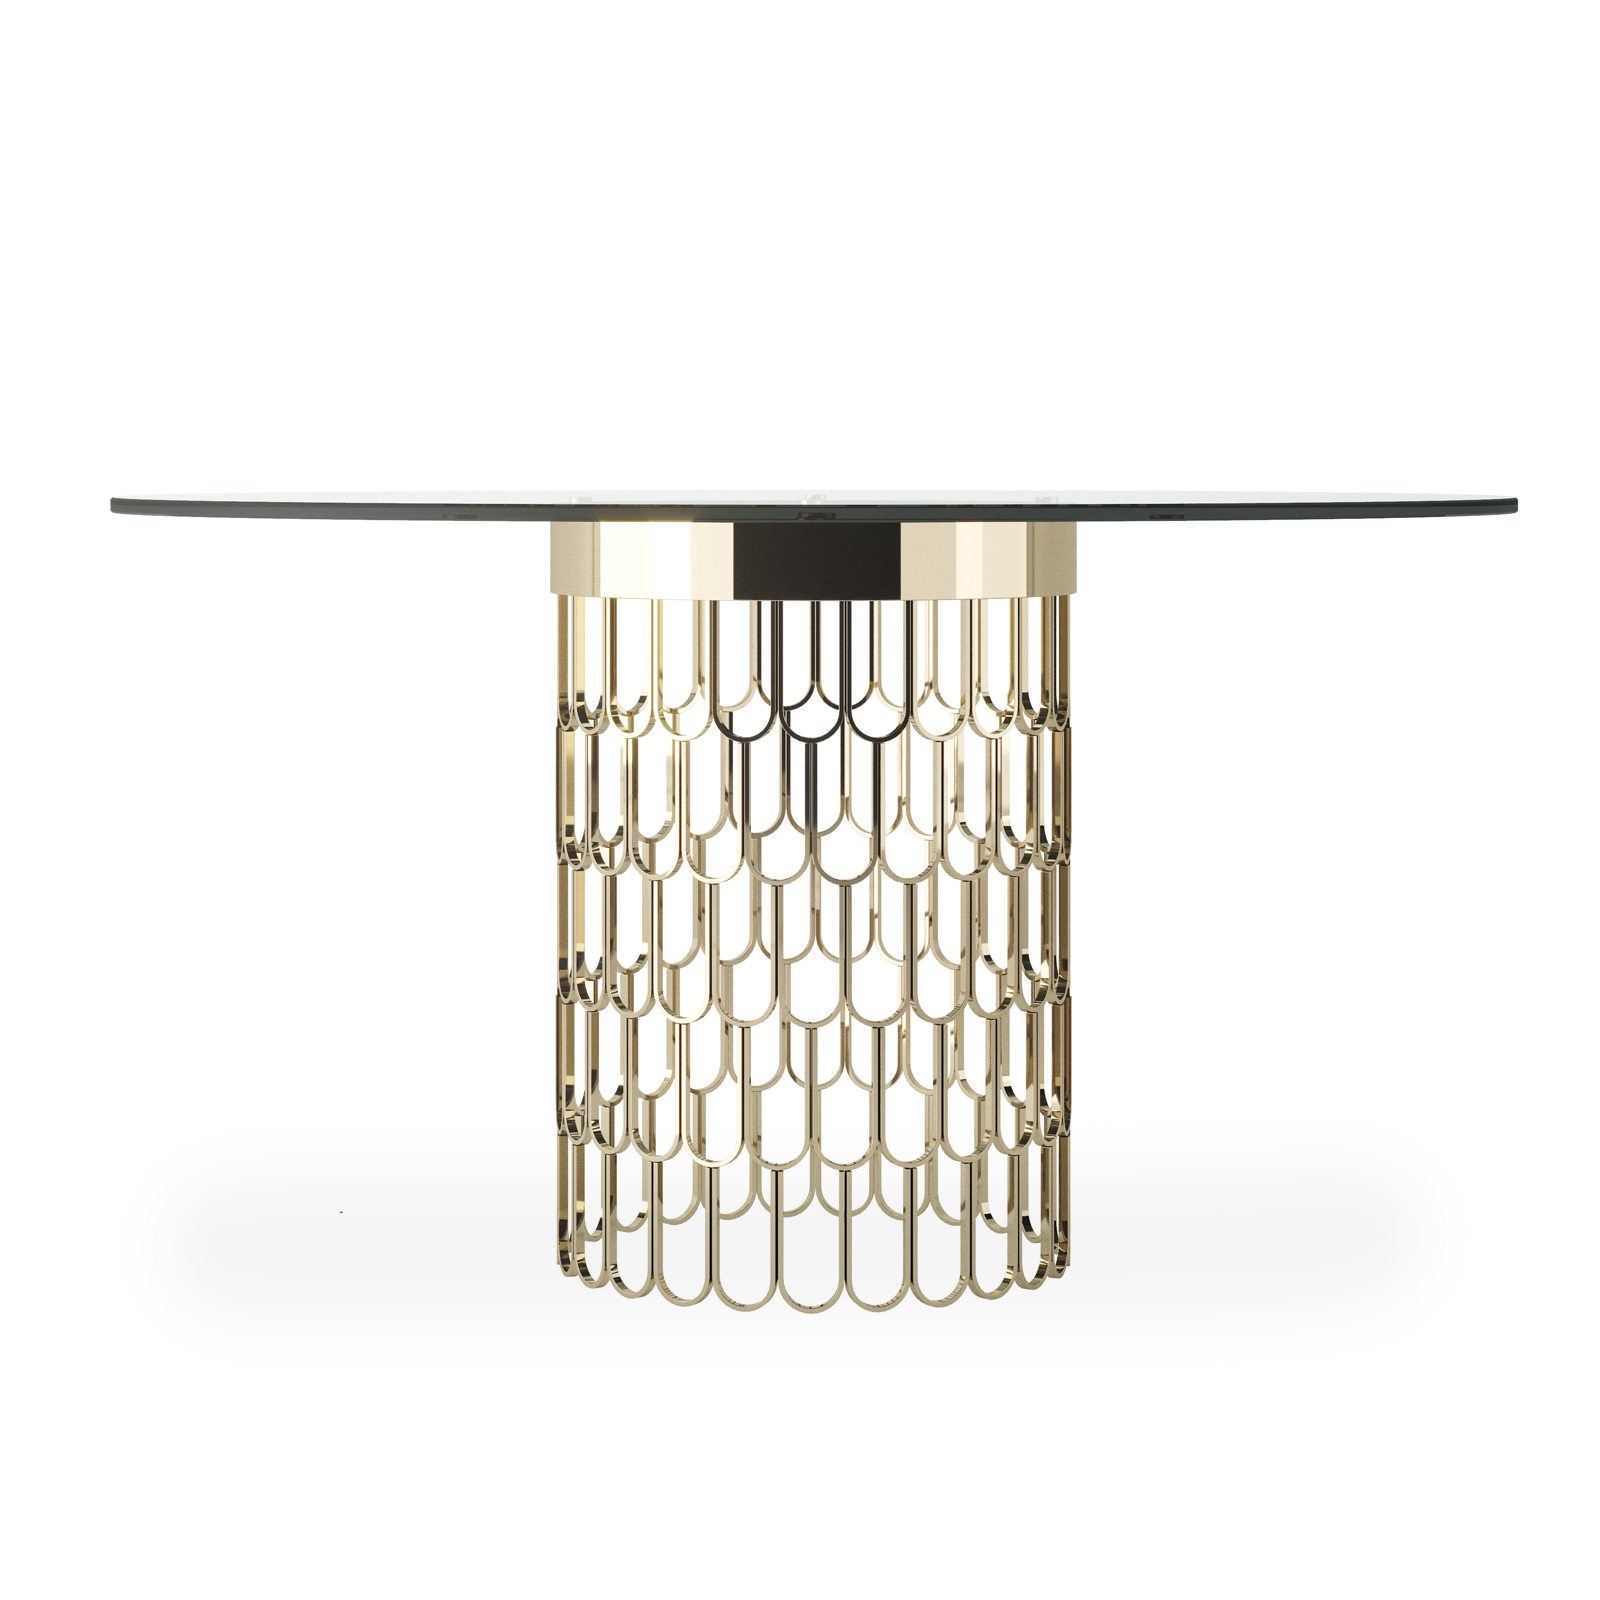 Feather-Dining-Table-Brass-by-Bonham-&-Bonham-02